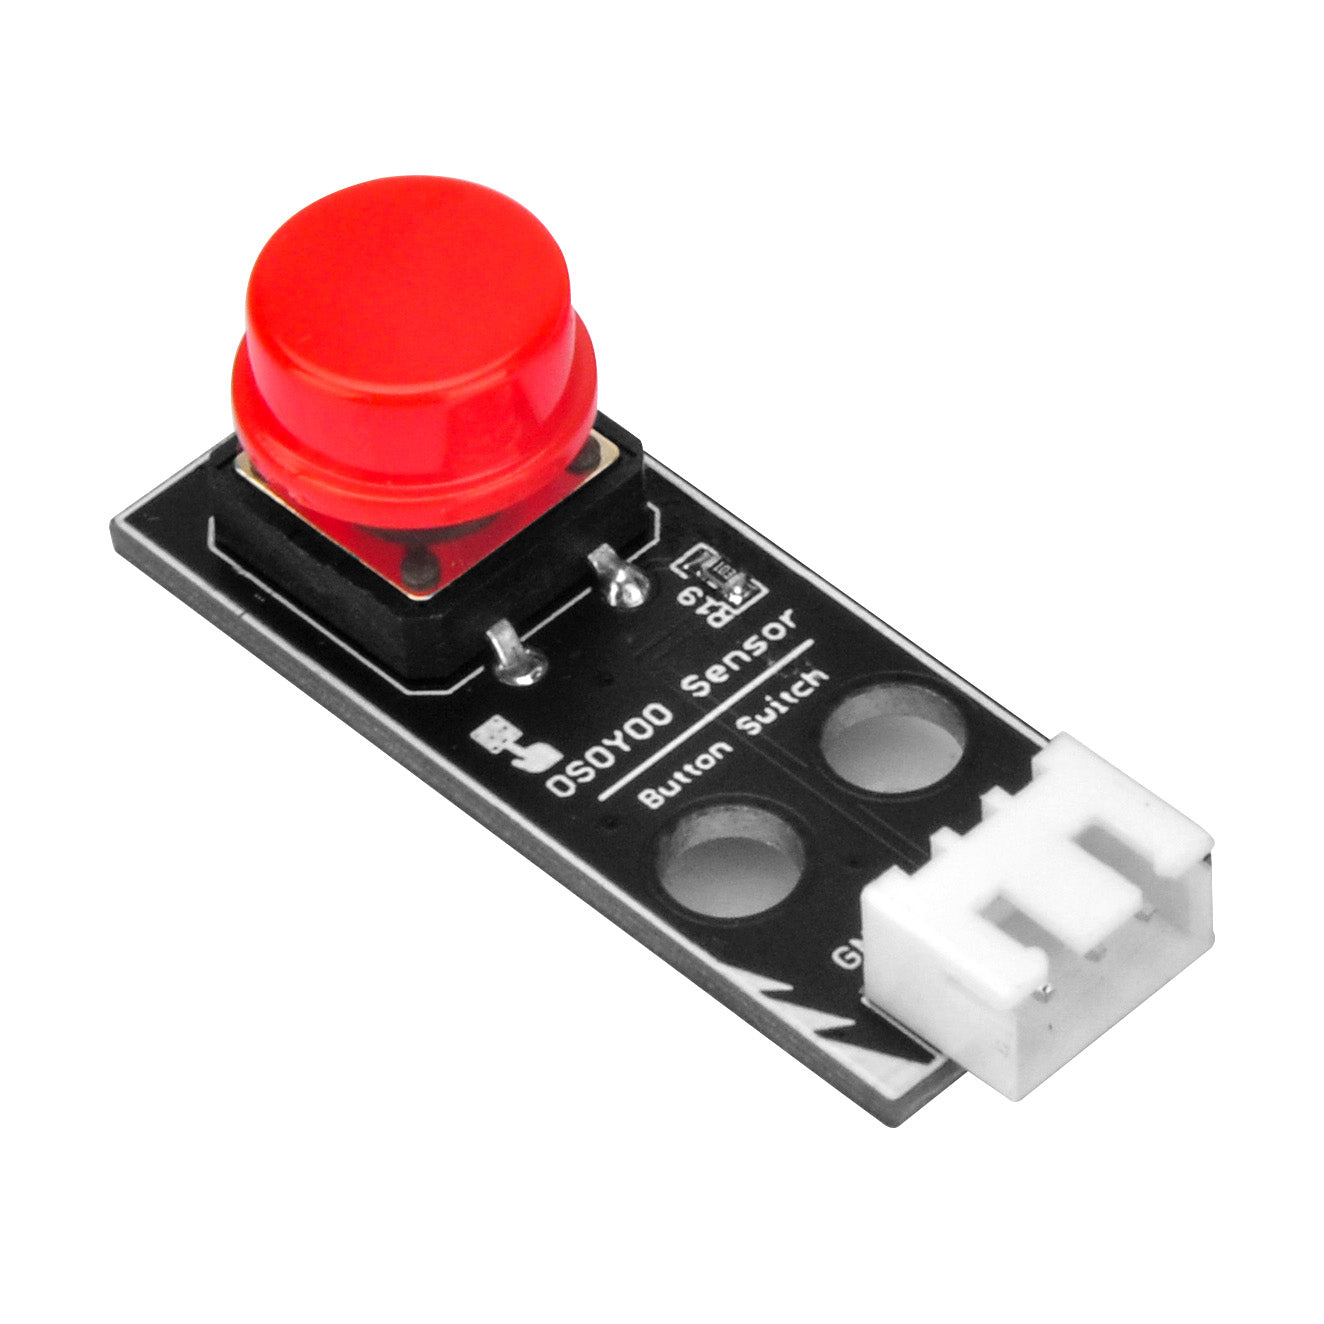 Red button module for OSOYOO STEM Kit for Micro:bit (model#2019011500)